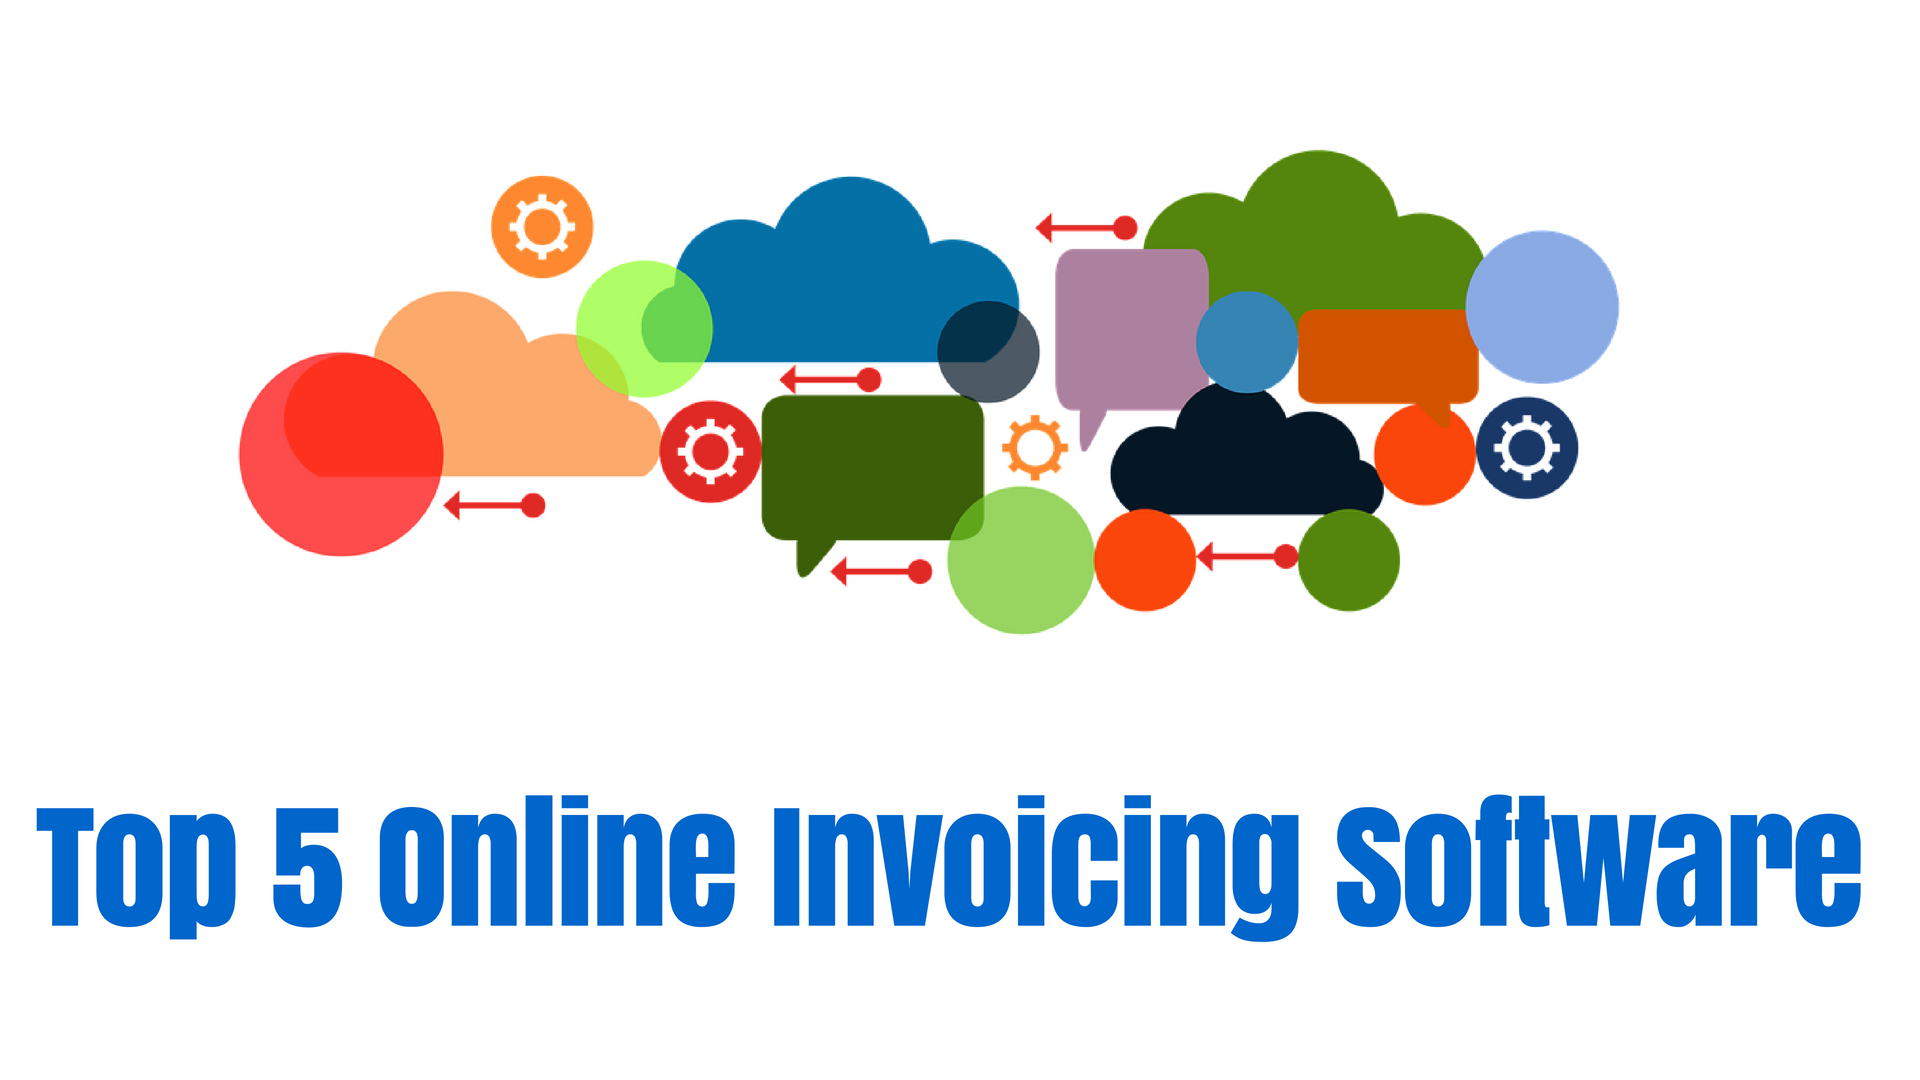 Top 5 Online Invoicing Software